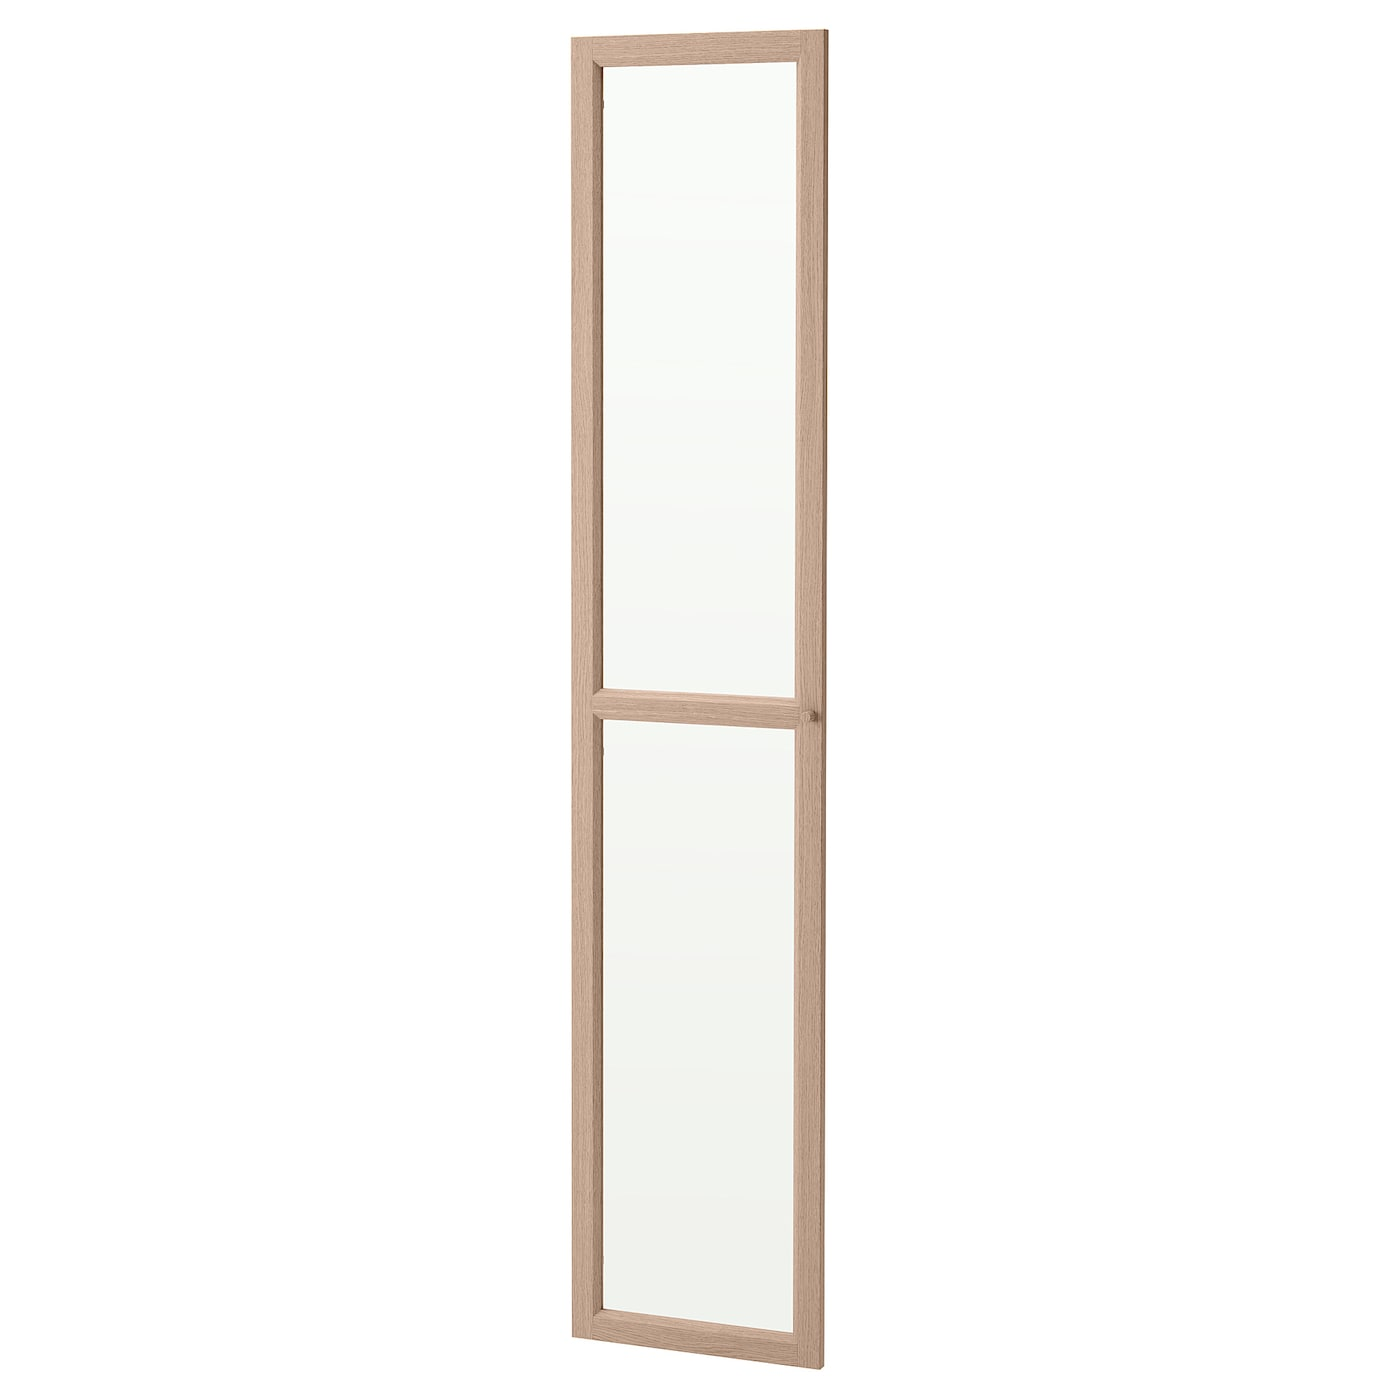 Ikea Oxberg Gl Door Adjule Hinges Allow You To Adjust The Horizontally And Vertically